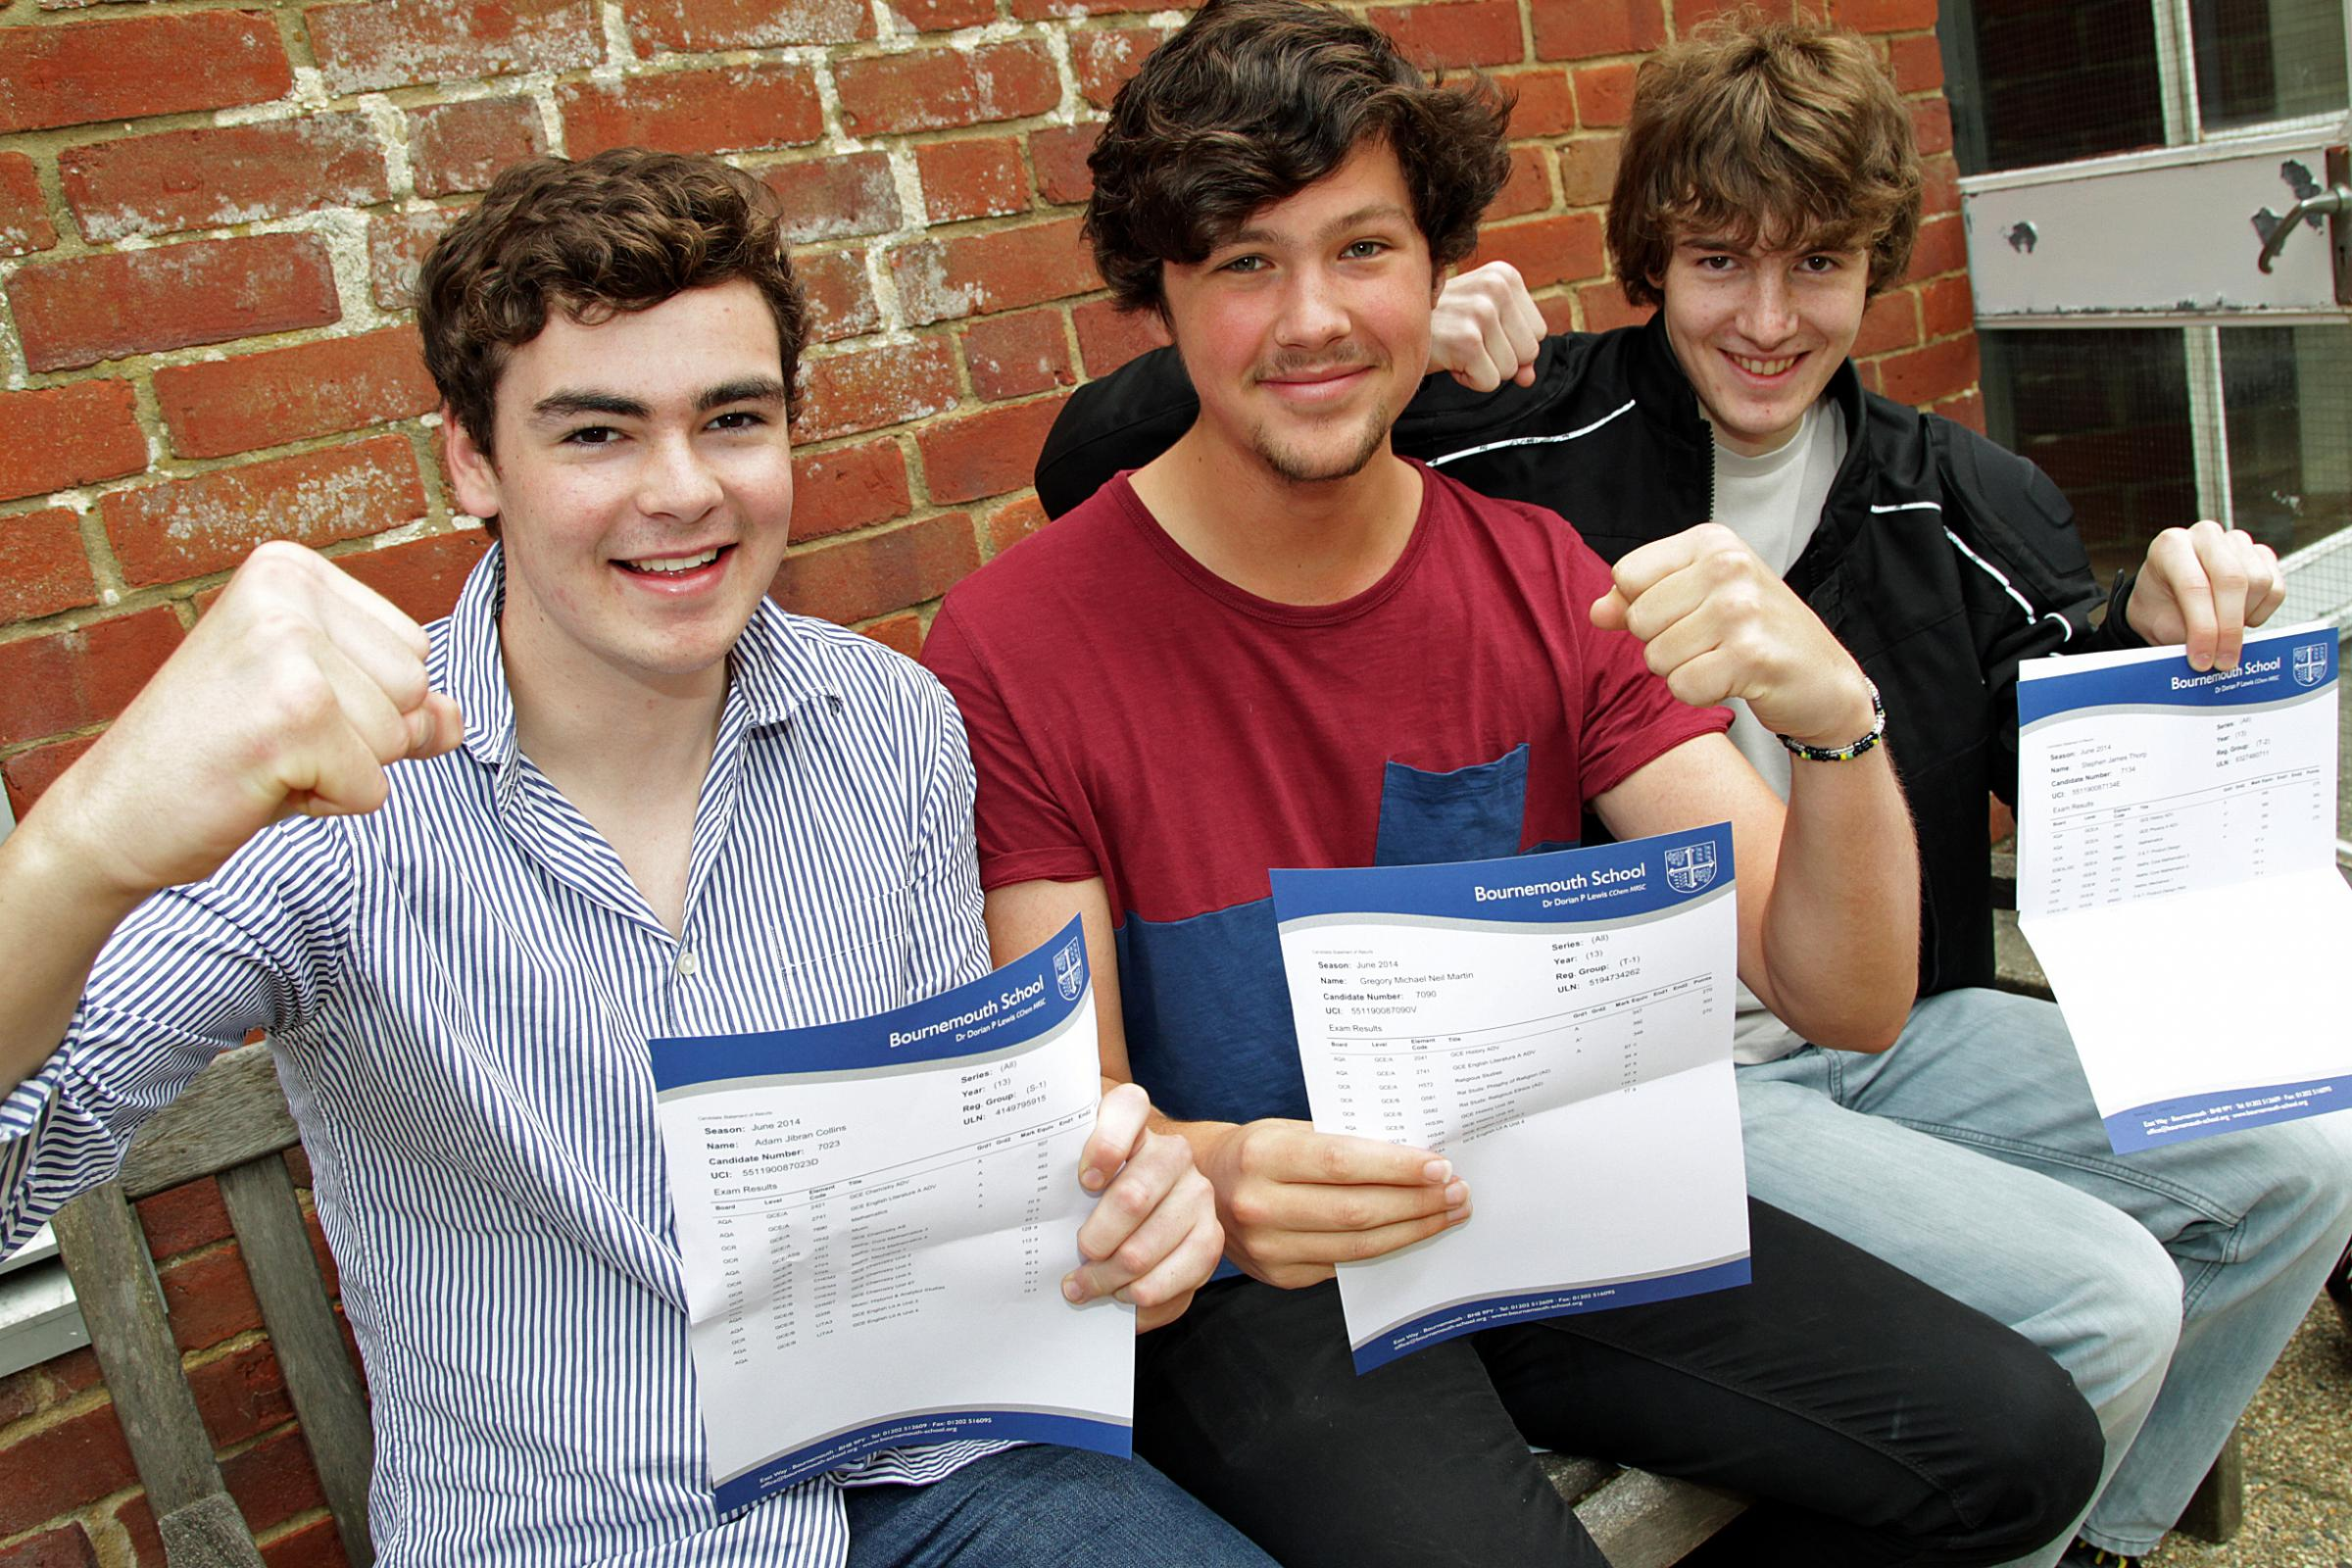 VIDEO: Celebrations as students collect A level results across Dorset and the New Forest